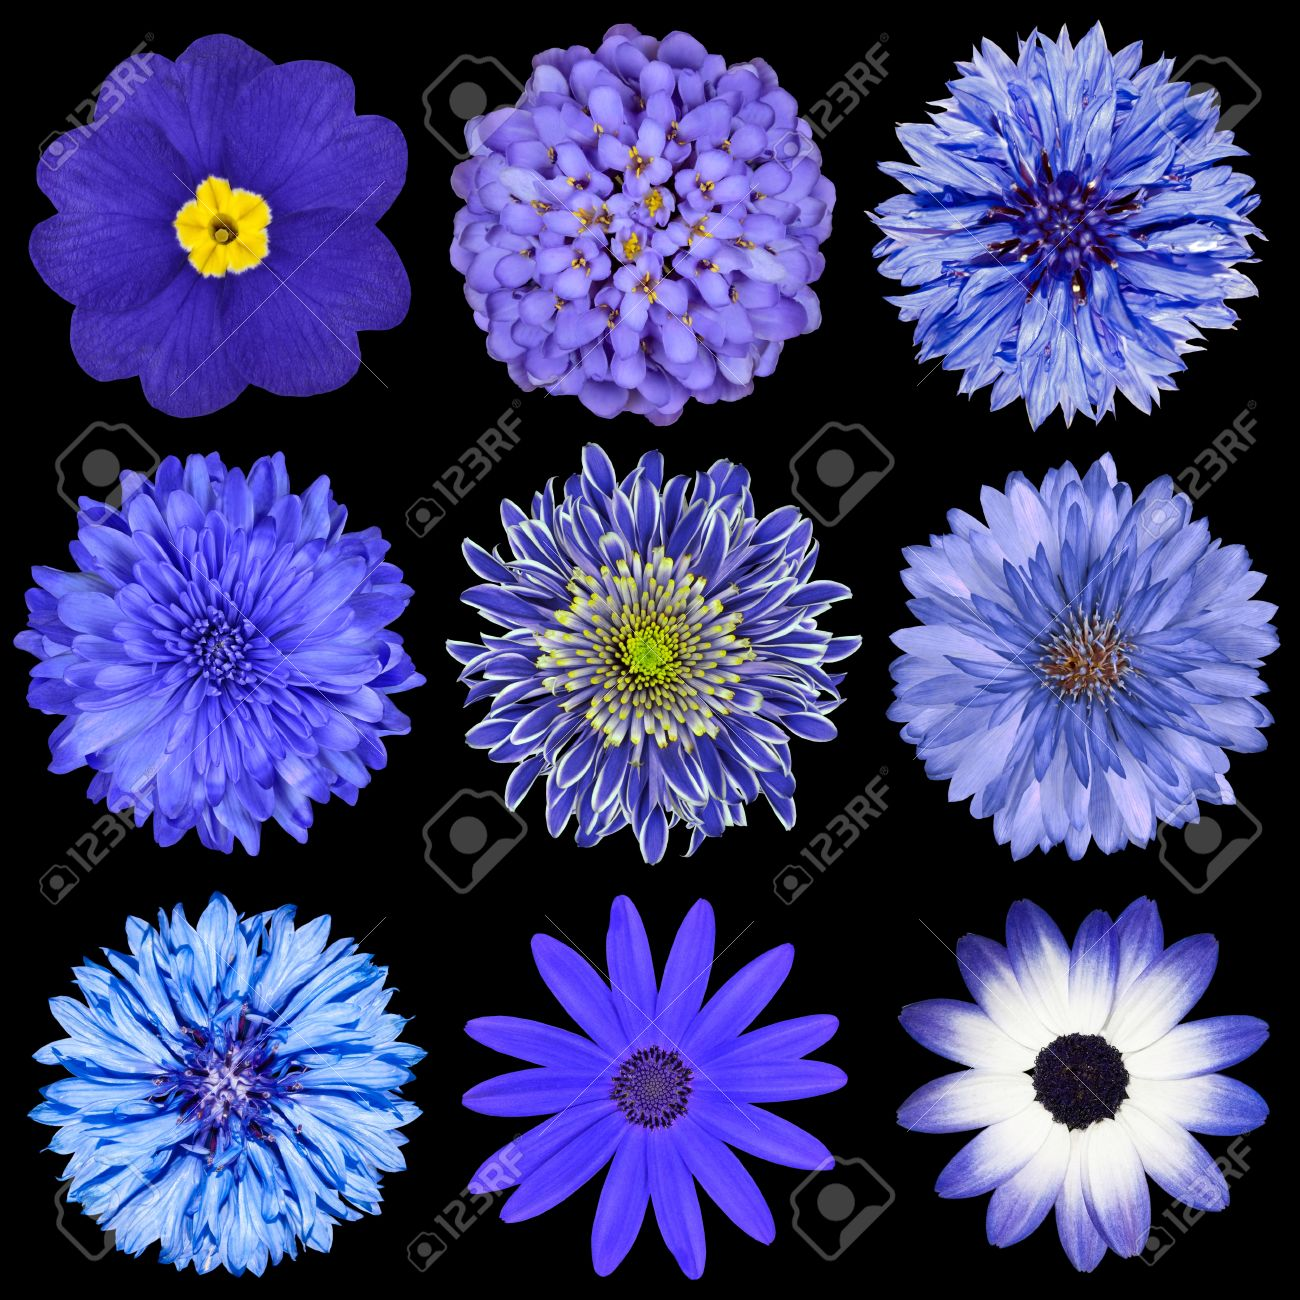 Cornflower stock photos royalty free cornflower images and pictures cornflower various blue flowers selection isolated on black background daisy chrystanthemum cornflower dhlflorist Images